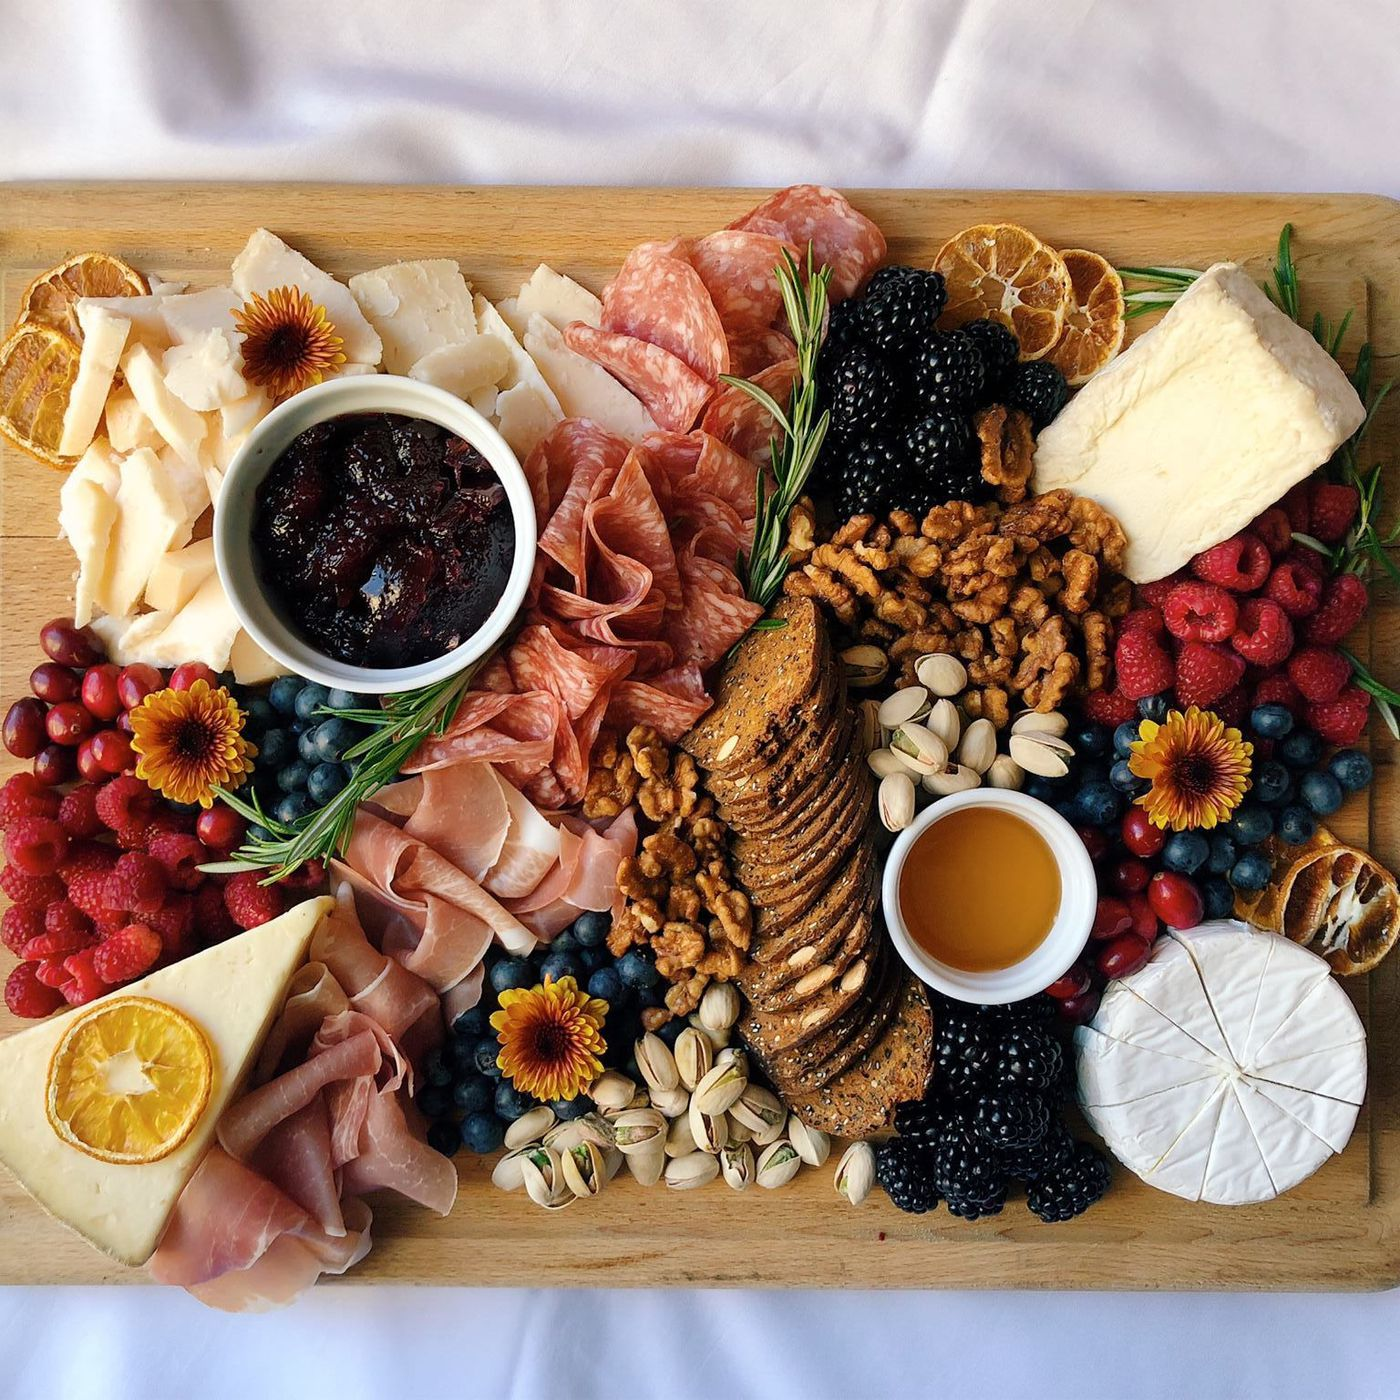 How To Make A Trendy Cheese Plate Eater